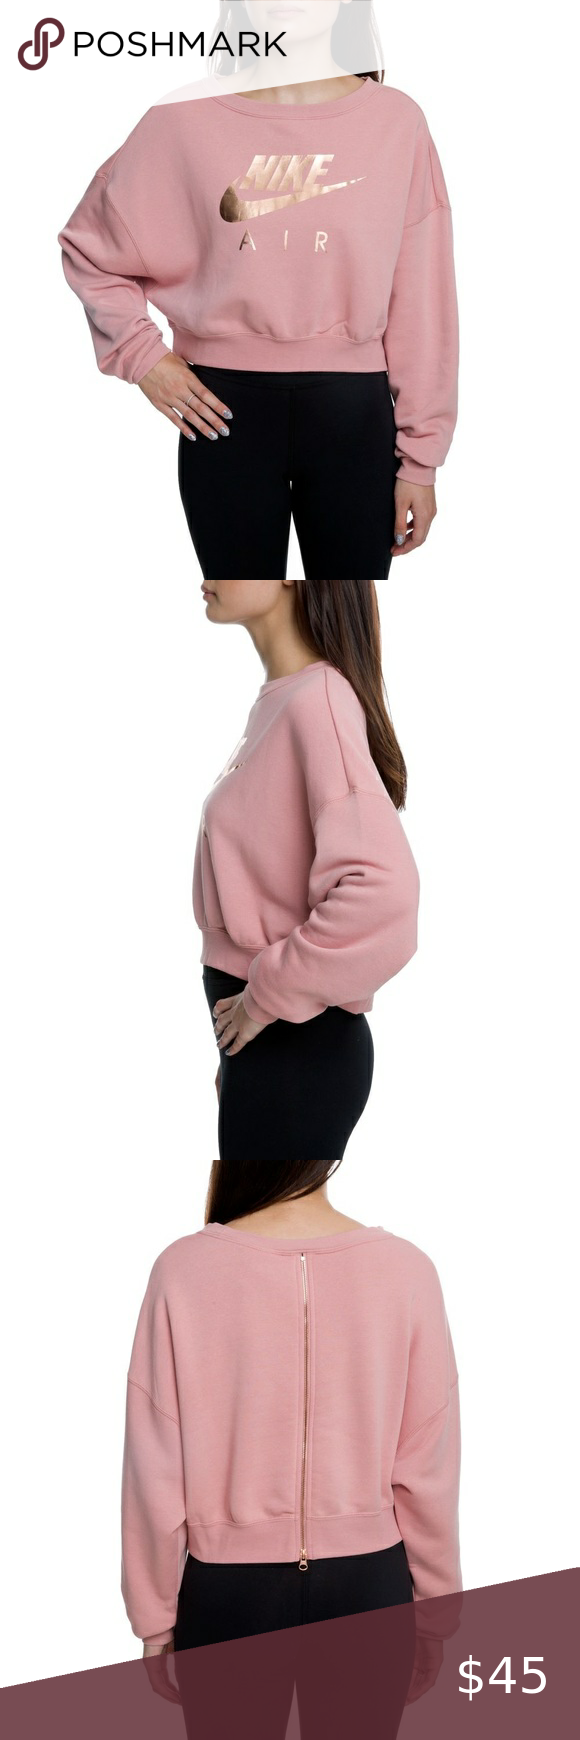 Predownload: Nike Air Rally Crew Neck Sweater Rose Gold Small Title Brand Stylename Type Color Size Small Excellent Us Crew Neck Sweater Sweaters For Women Clothes Design [ 1740 x 580 Pixel ]